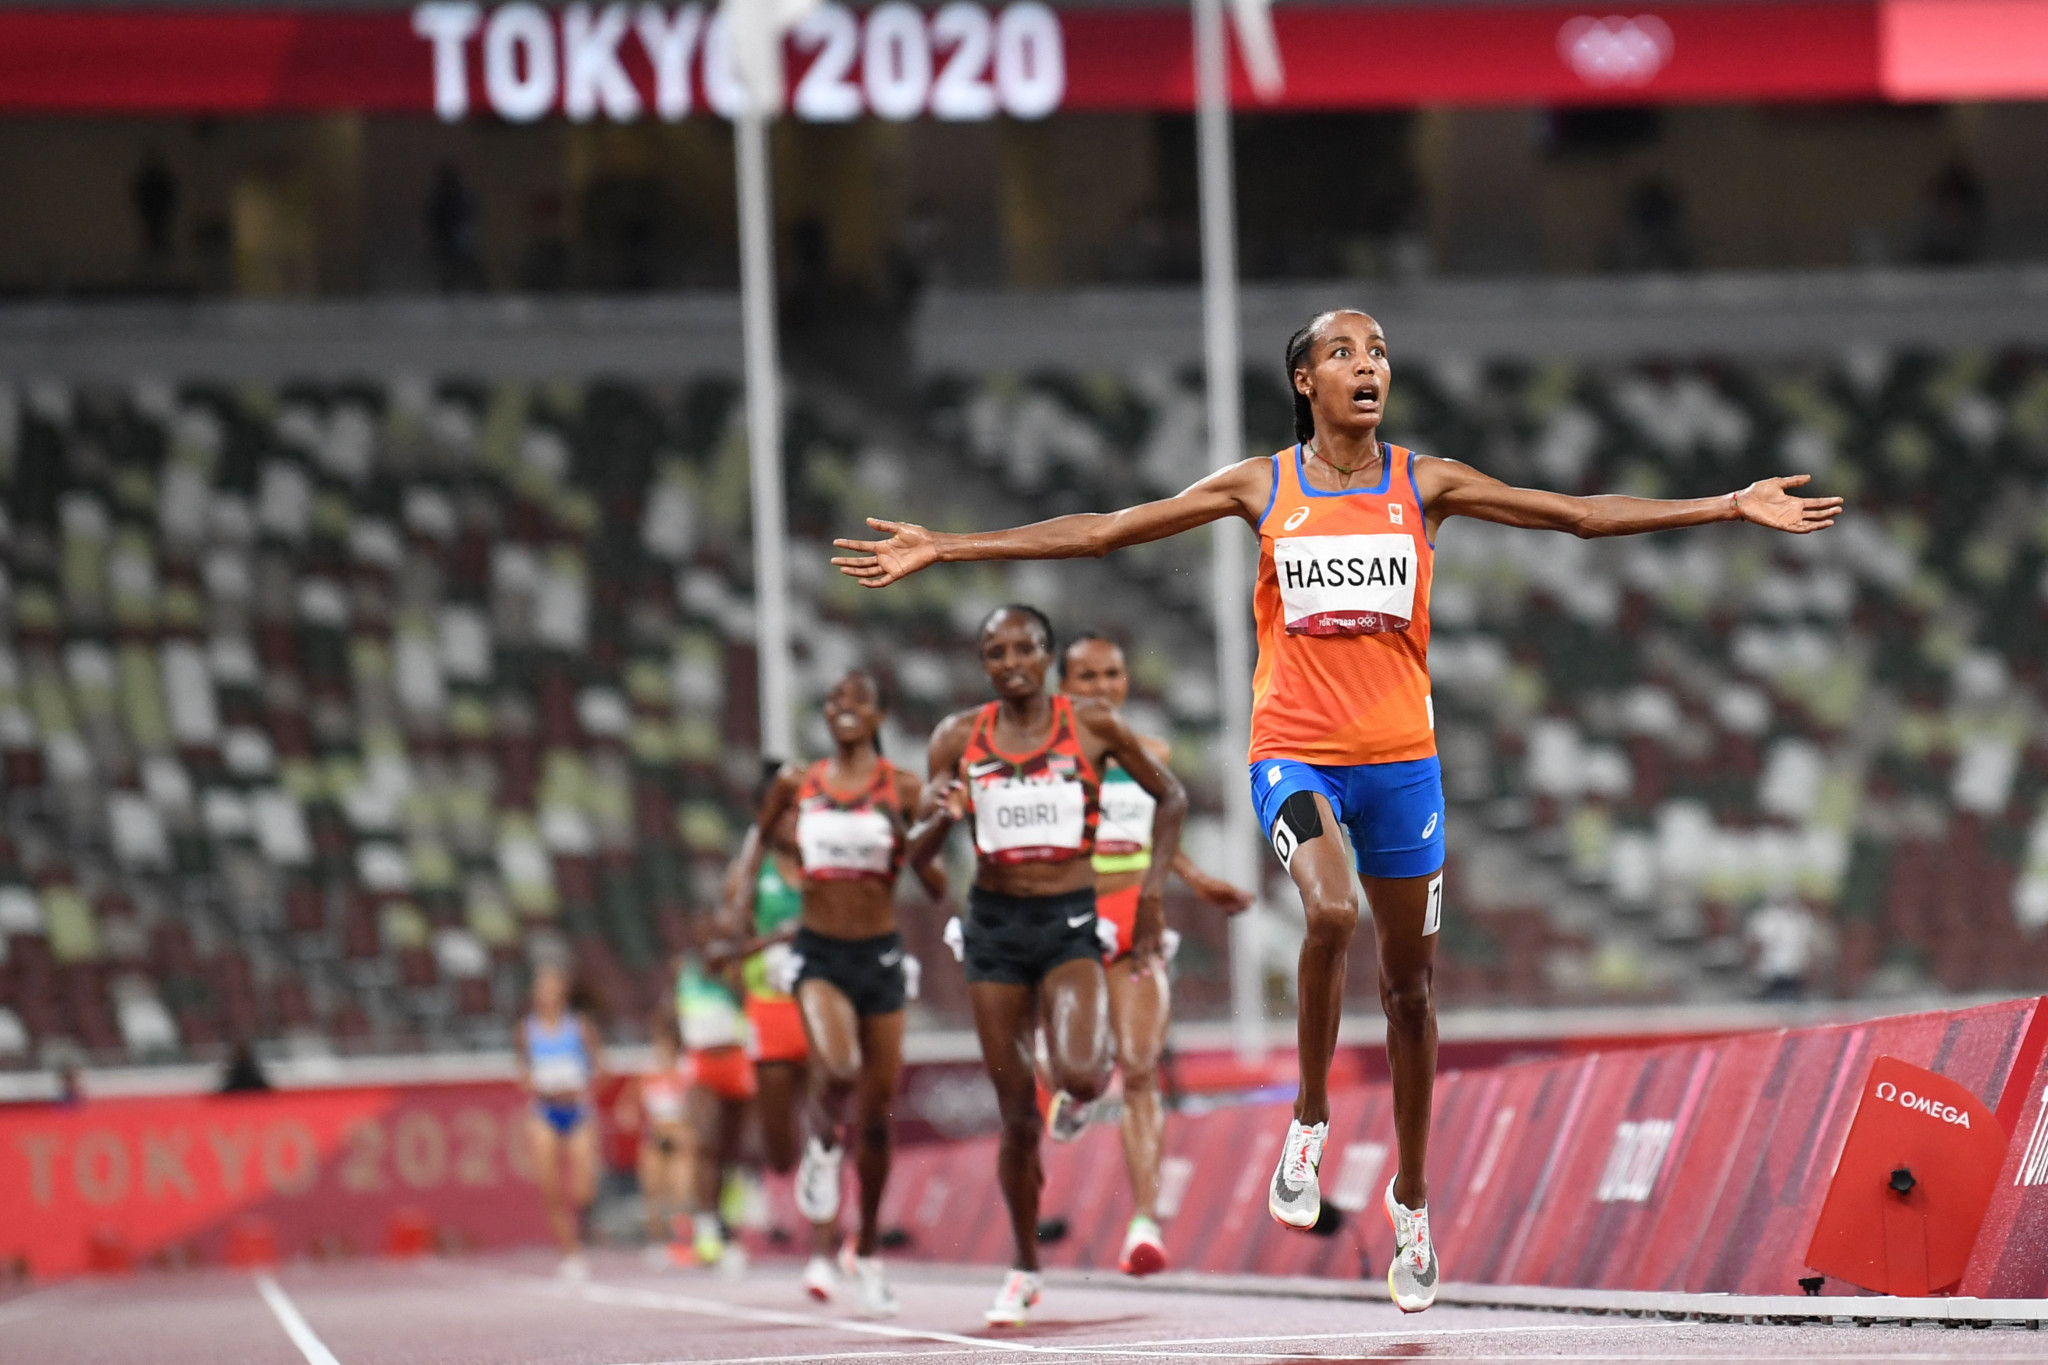 Dutch star Sifan Hassan fell in 1500m qualifying but still advanced, dusted herself off and went on to win the women's 5,000m gold medal ©Getty Images